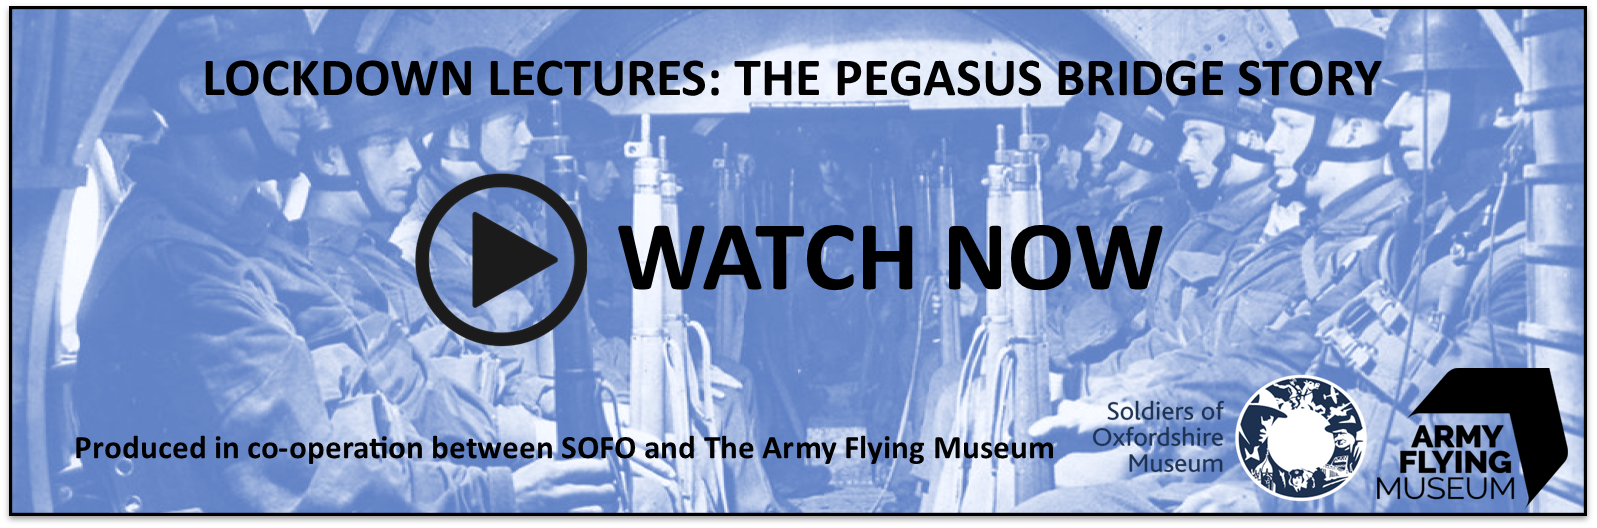 Watch the Lockdown Lecture: The Pegasus Bridge Story (Vimeo) using this link.